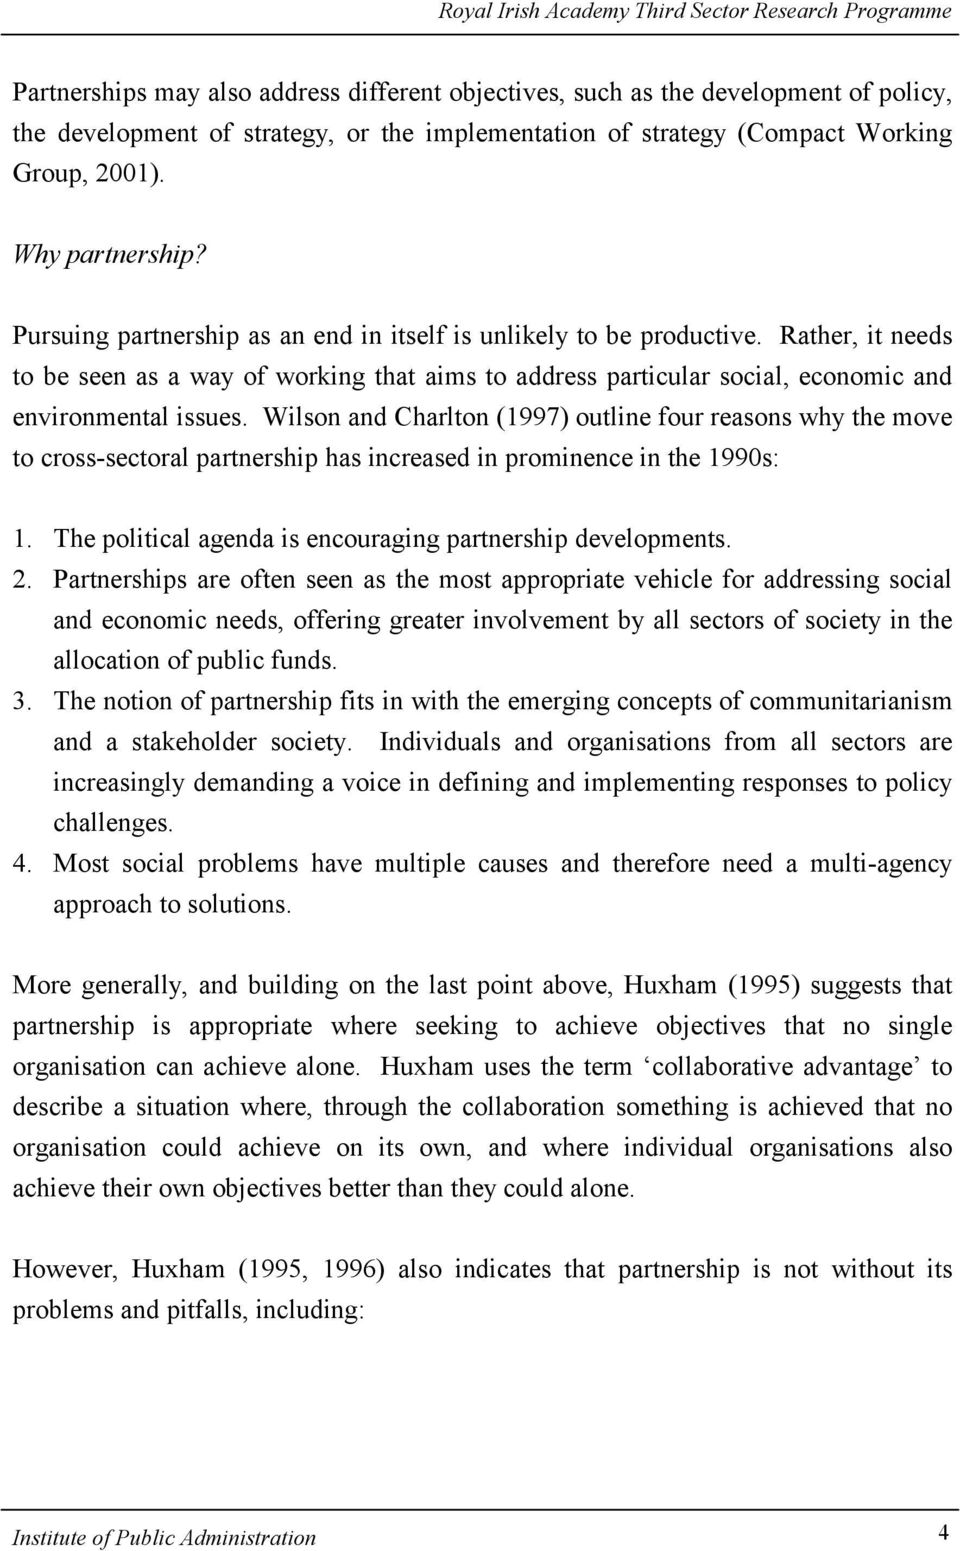 Wilson and Charlton (1997) outline four reasons why the move to cross-sectoral partnership has increased in prominence in the 1990s: 1. The political agenda is encouraging partnership developments. 2.